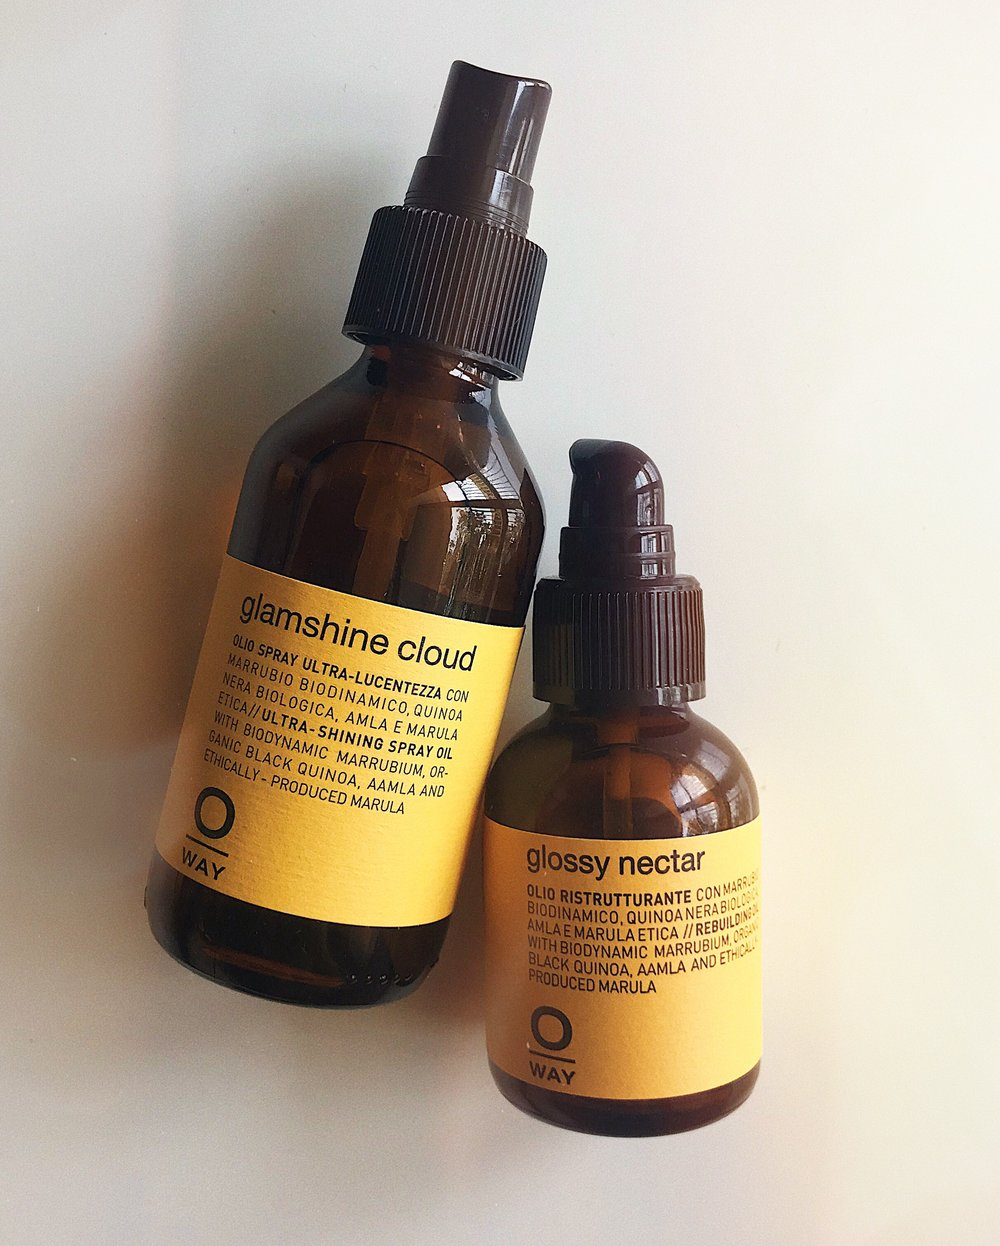 OWAY - Organic and biodynamic professional superior hair care.